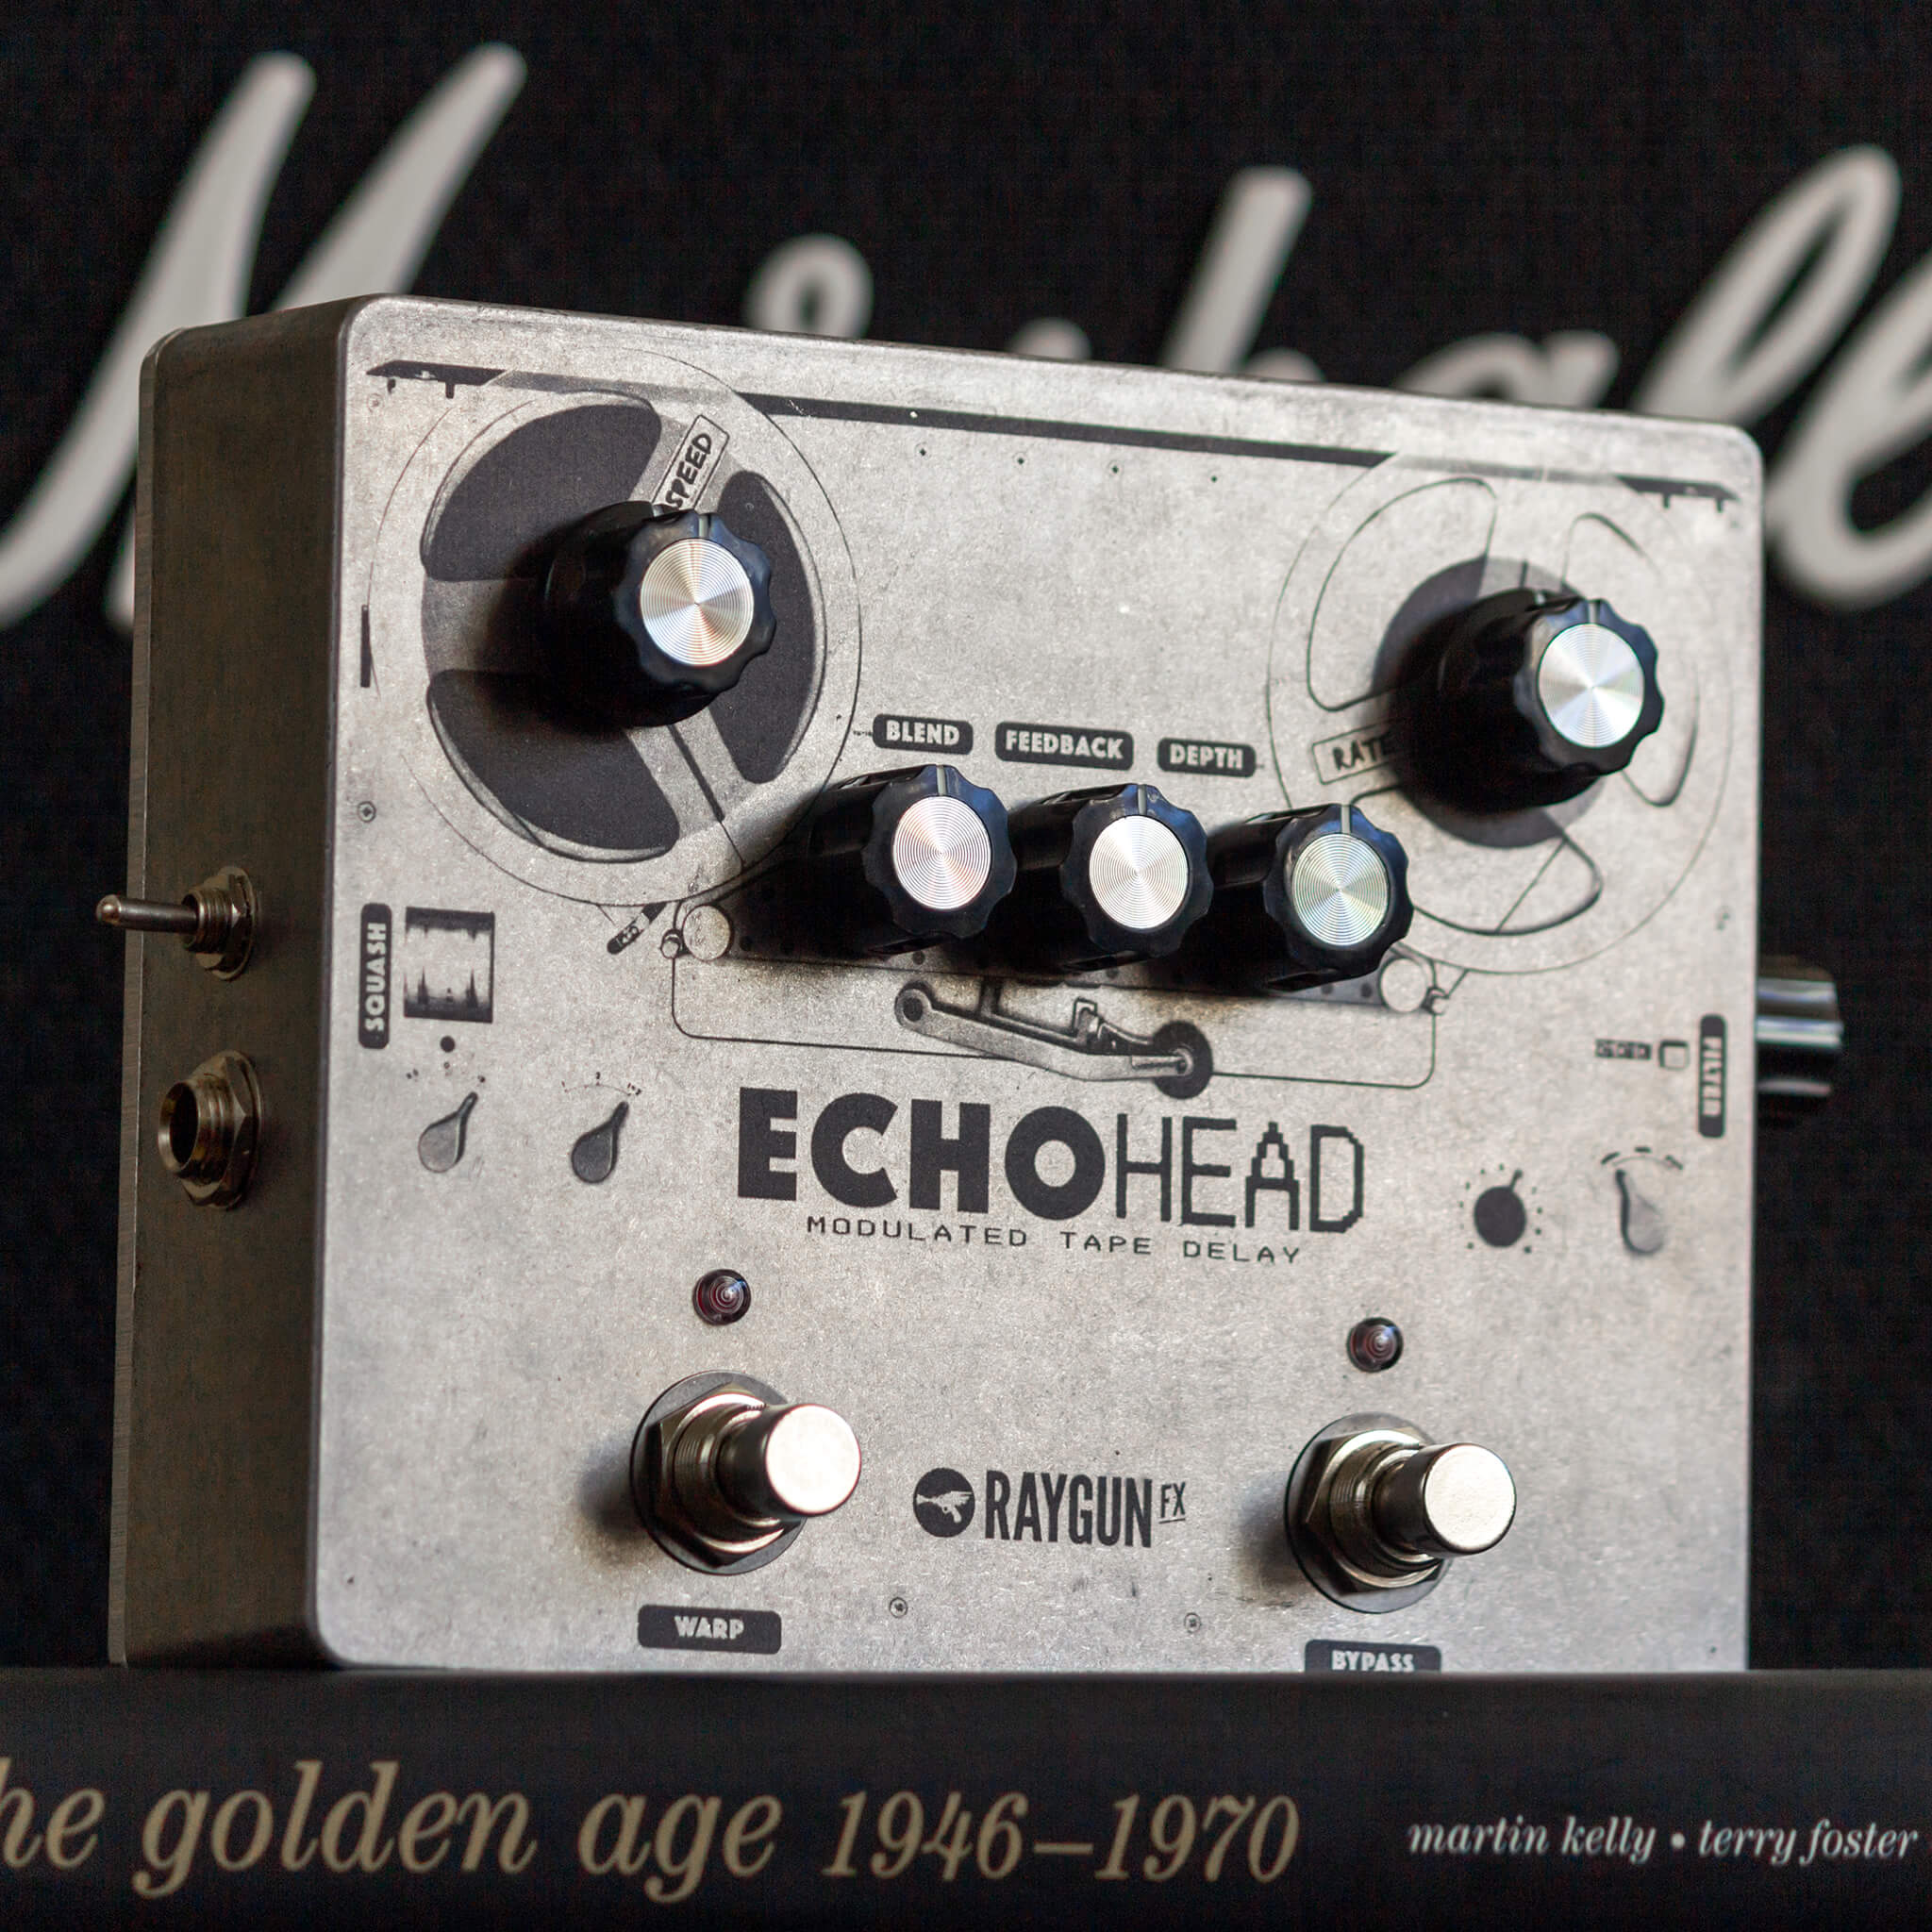 RAYGUN FX Echohead Analogue Delay Right Context - Boost Guitar Pedals